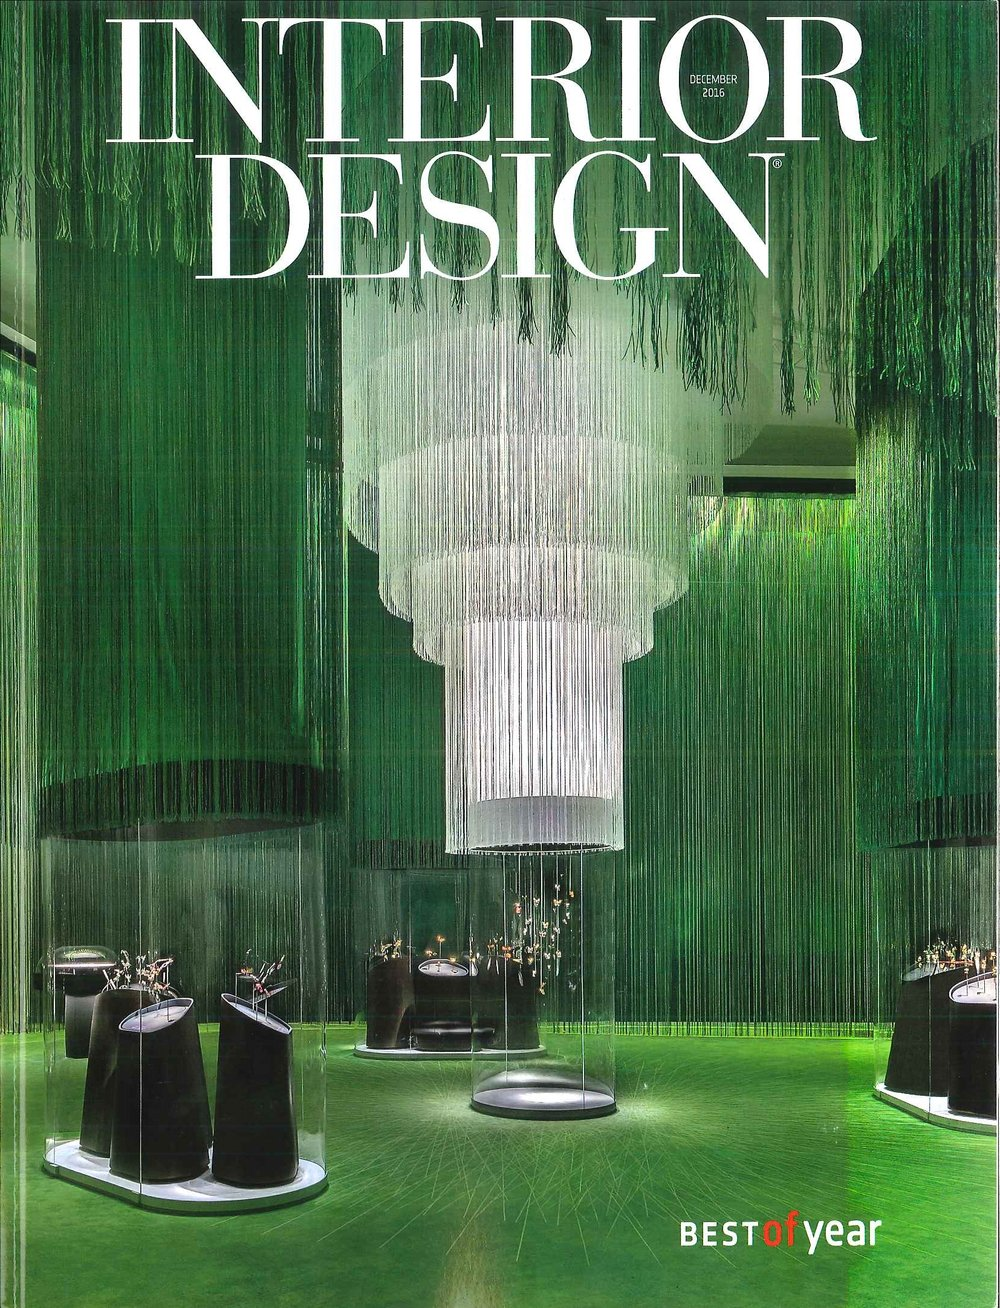 US Interior Design (Best of year) / Dec. 2016